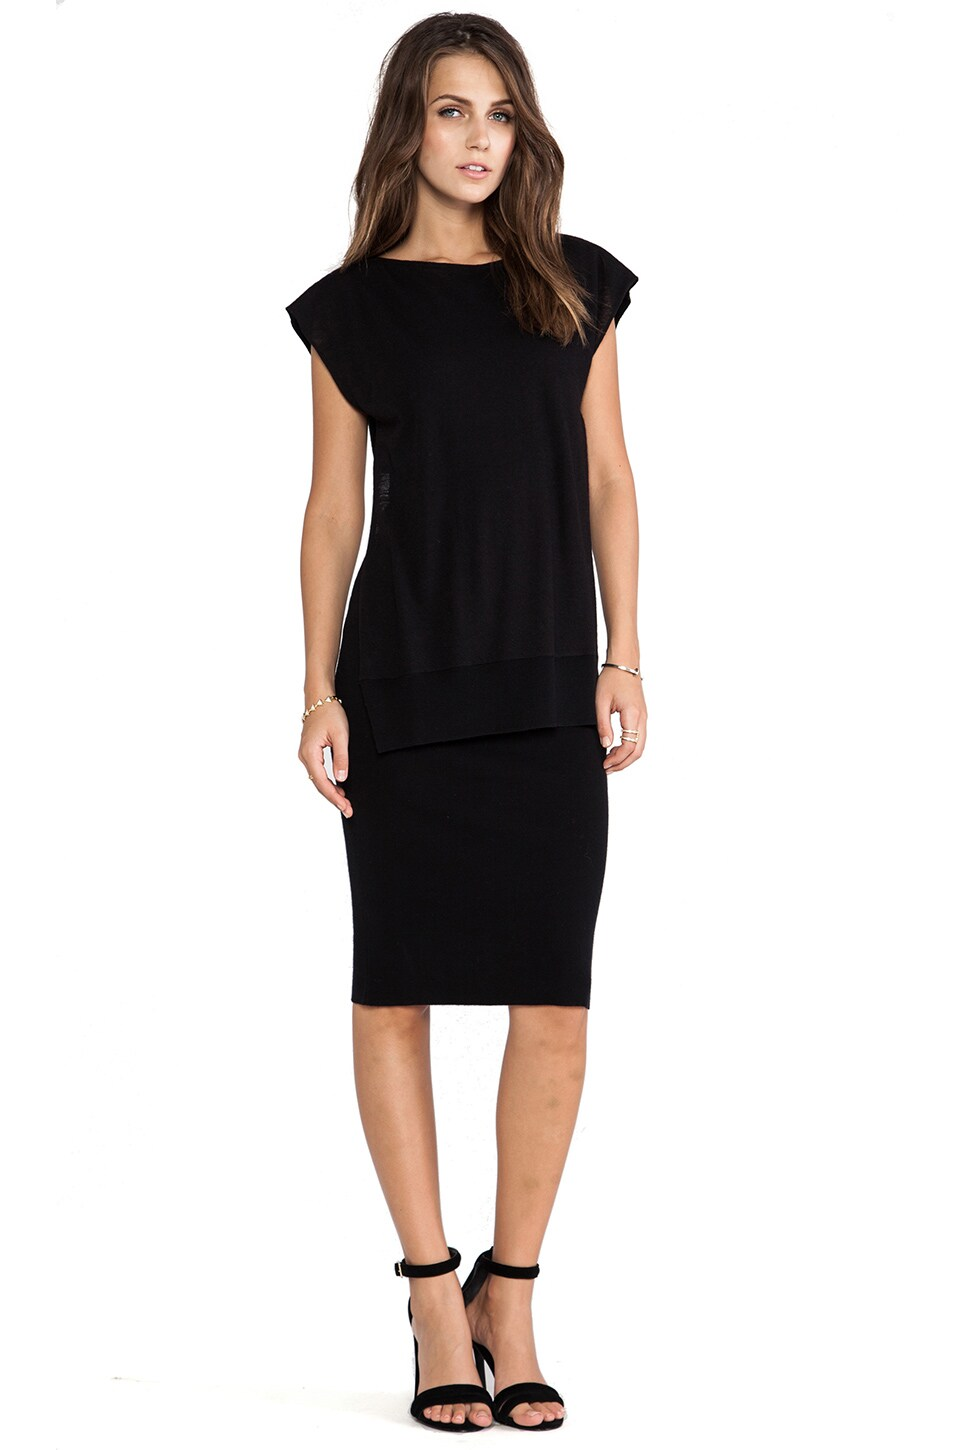 SONIA by Sonia Rykiel Sleeveless Dress in Black